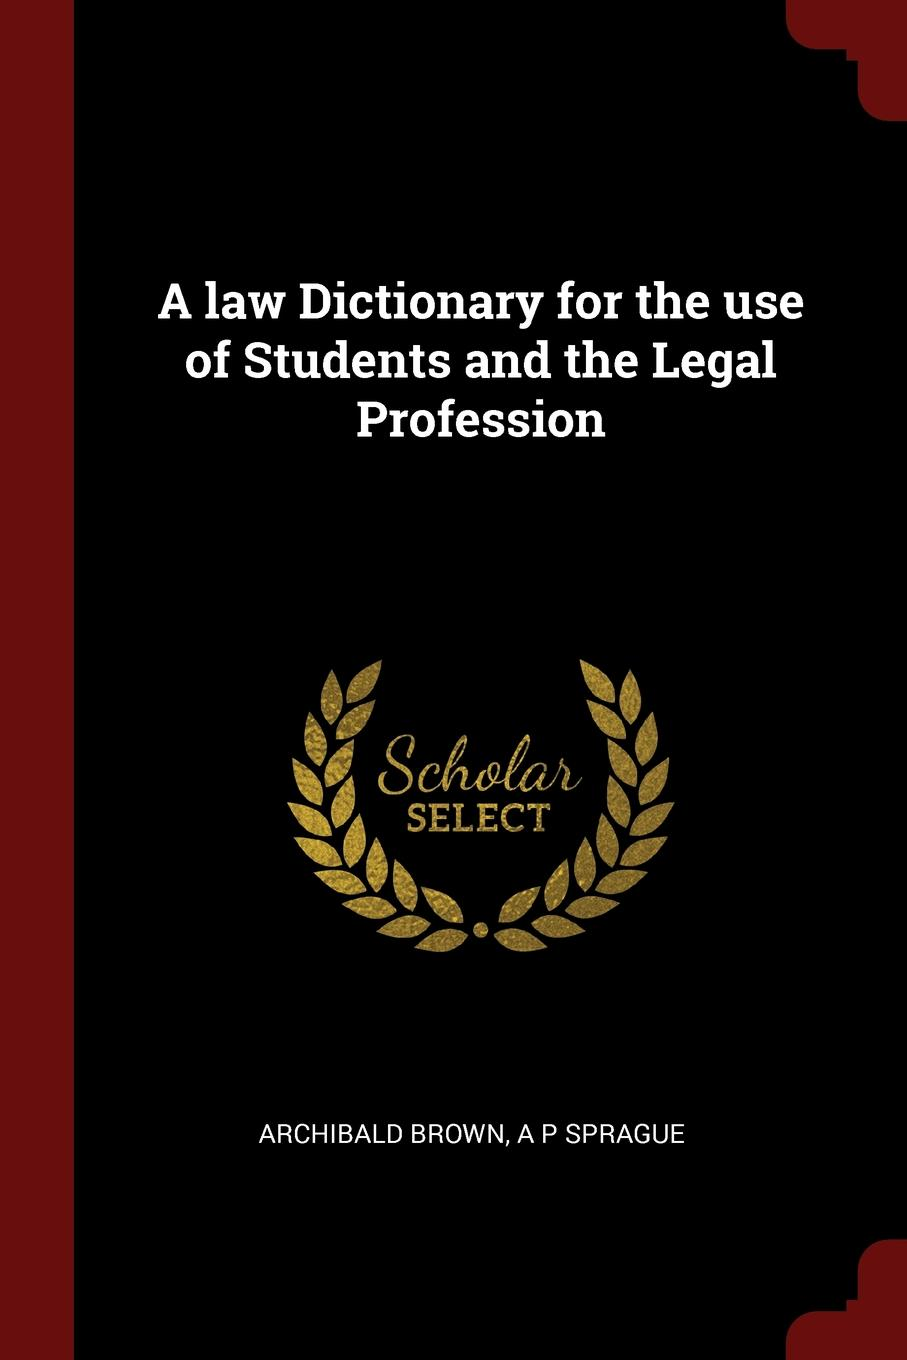 Archibald Brown, A P Sprague A law Dictionary for the use of Students and the Legal Profession